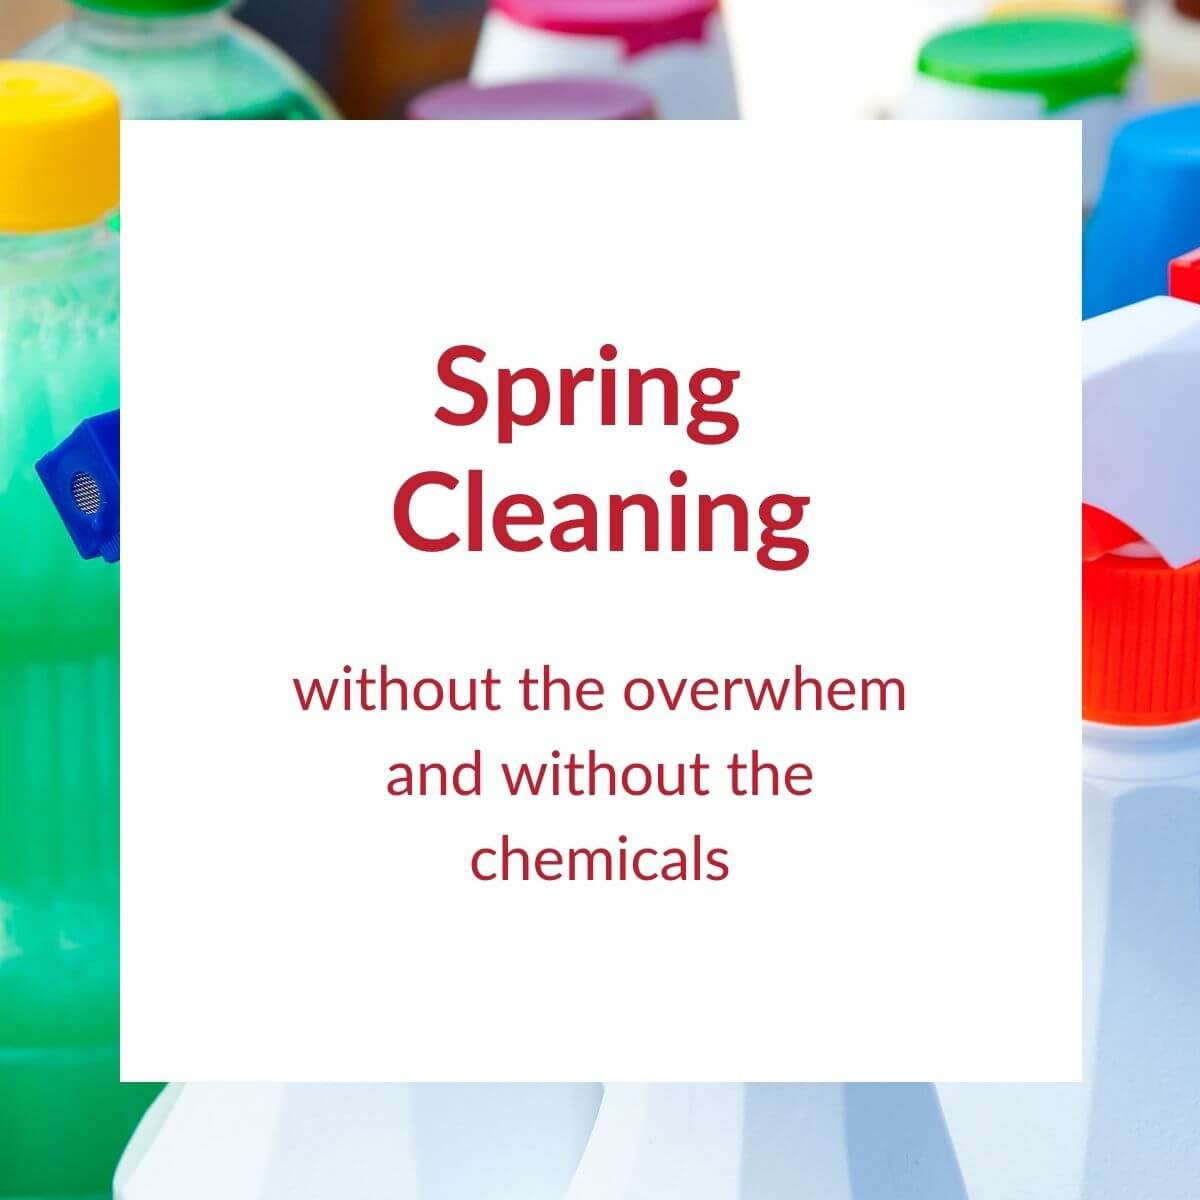 bottles of cleaning supplies with Spring Cleaning text overlay